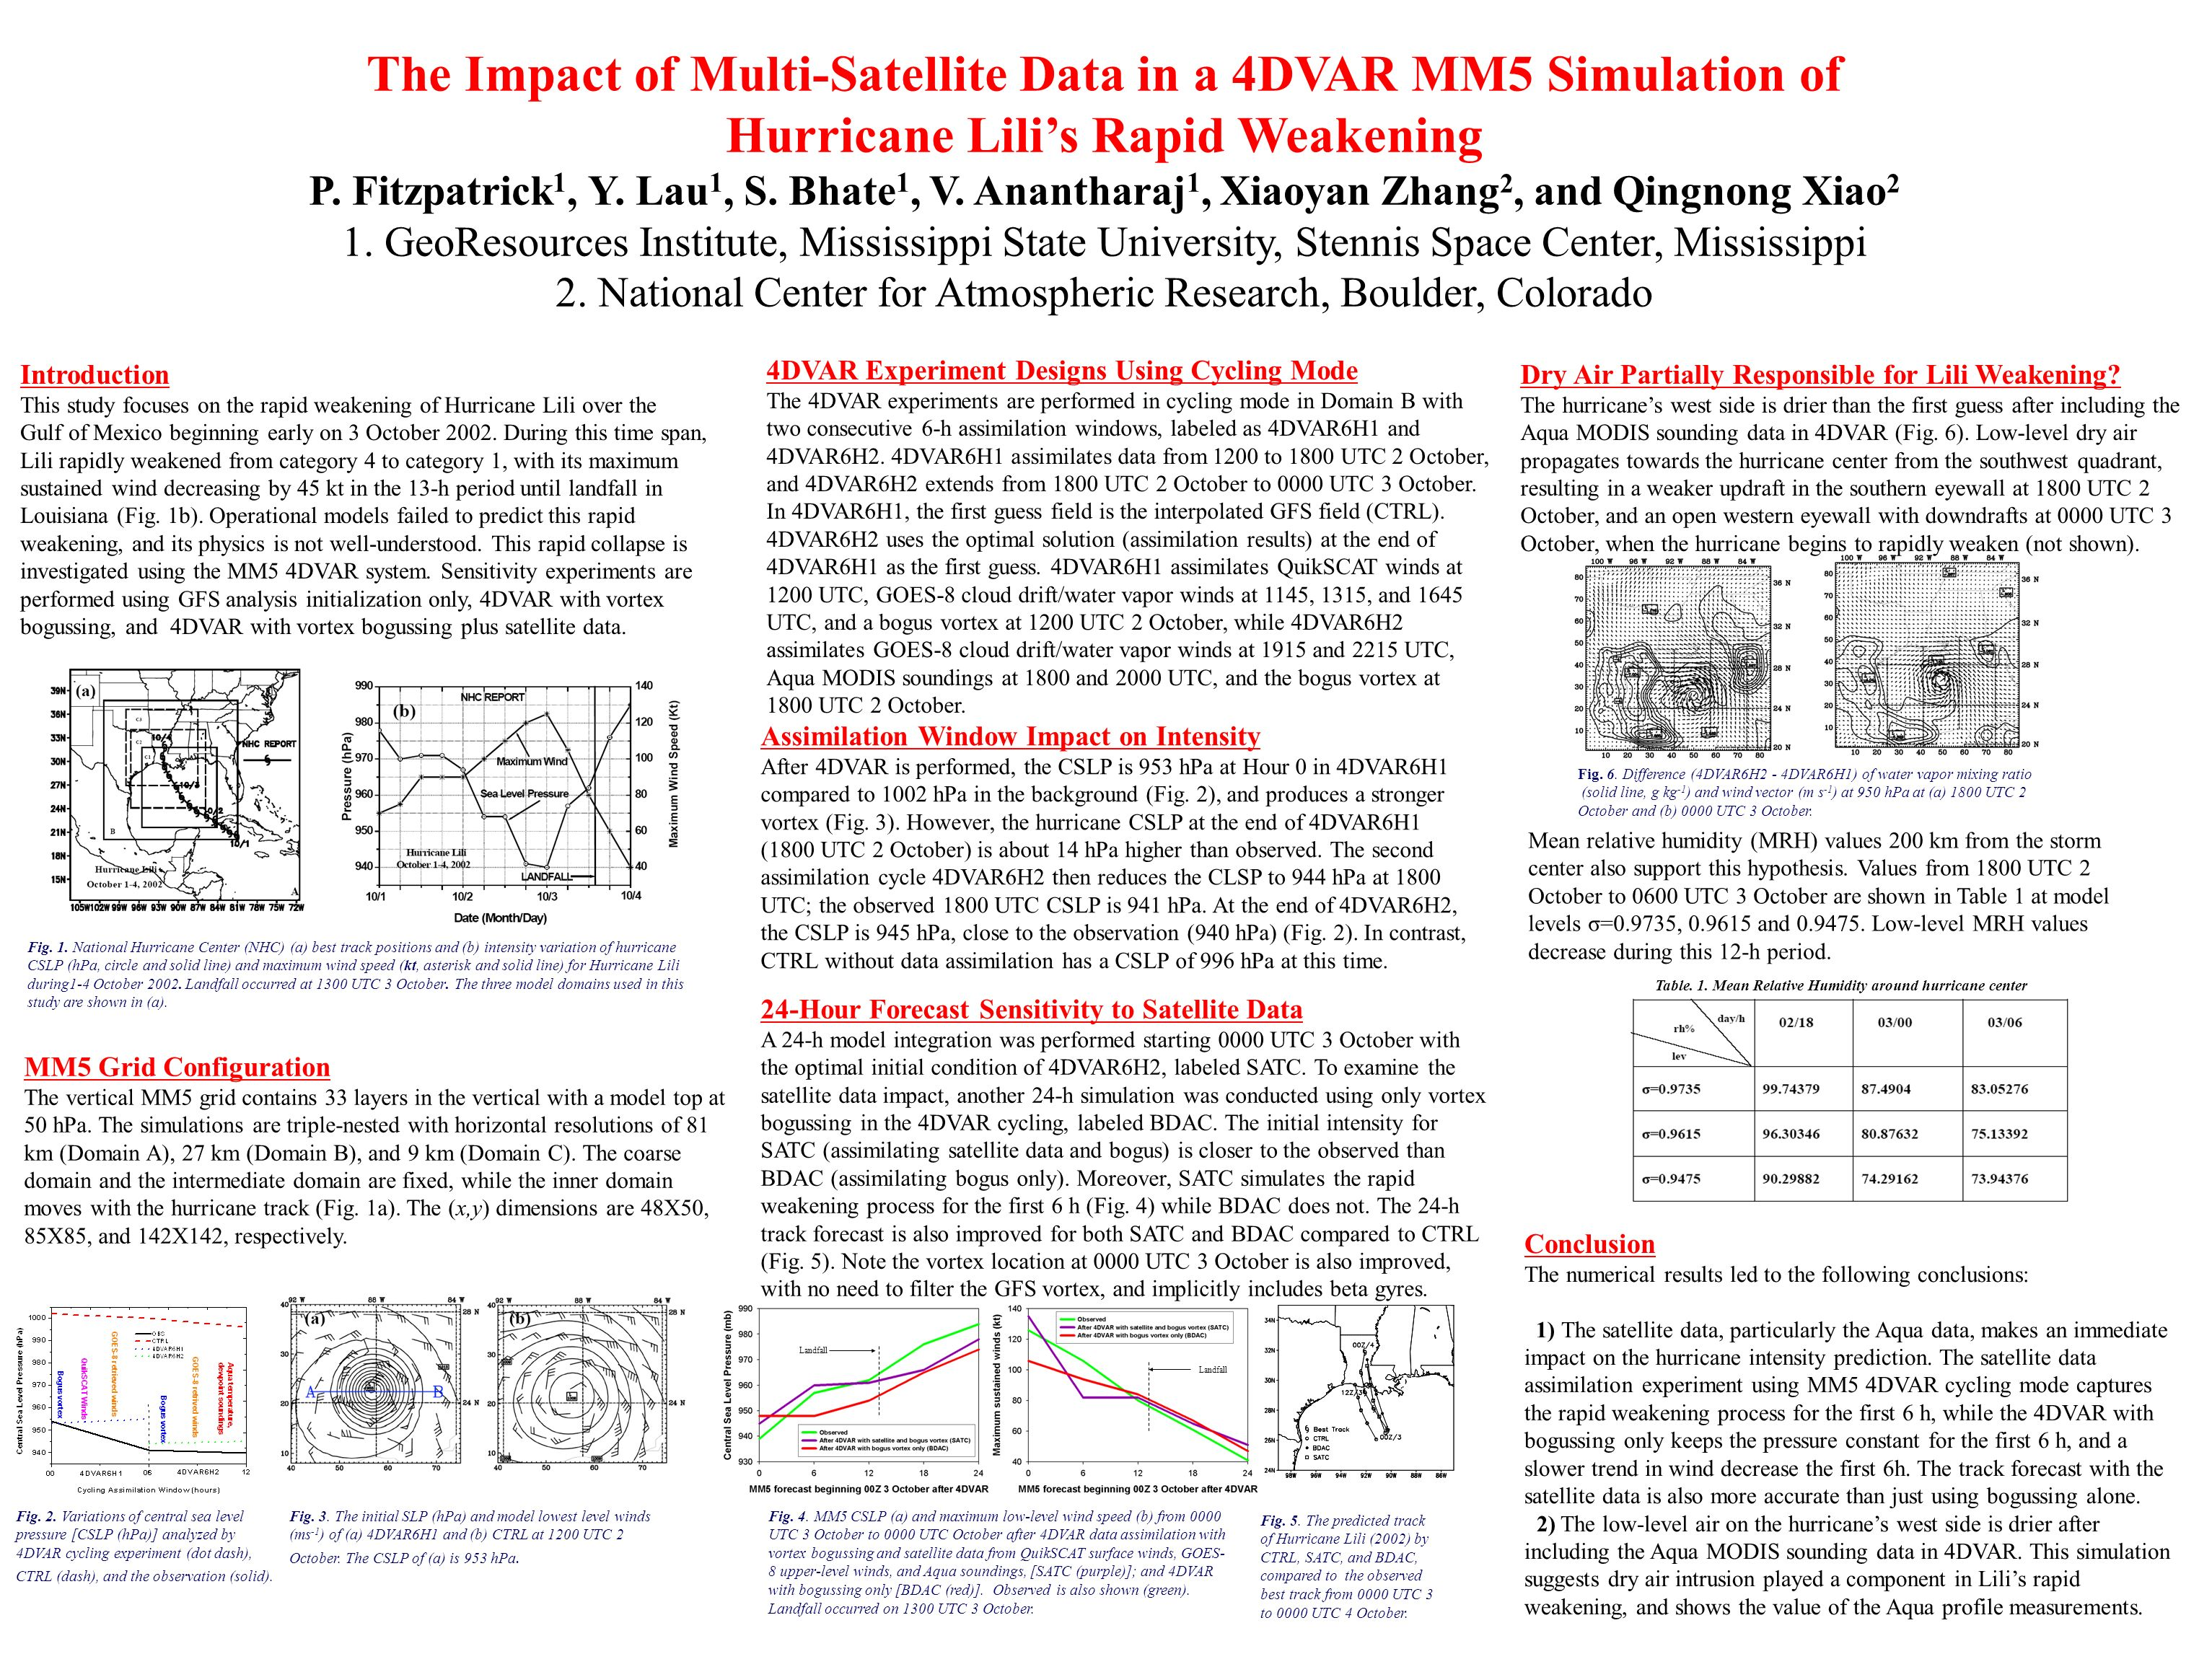 The Impact of Multi-Satellite Data in a 4DVAR MM5 Simulation of Hurricane Lilis Rapid Weakening P. Fitzpatrick 1, Y. Lau 1, S. Bhate 1, V. Anantharaj